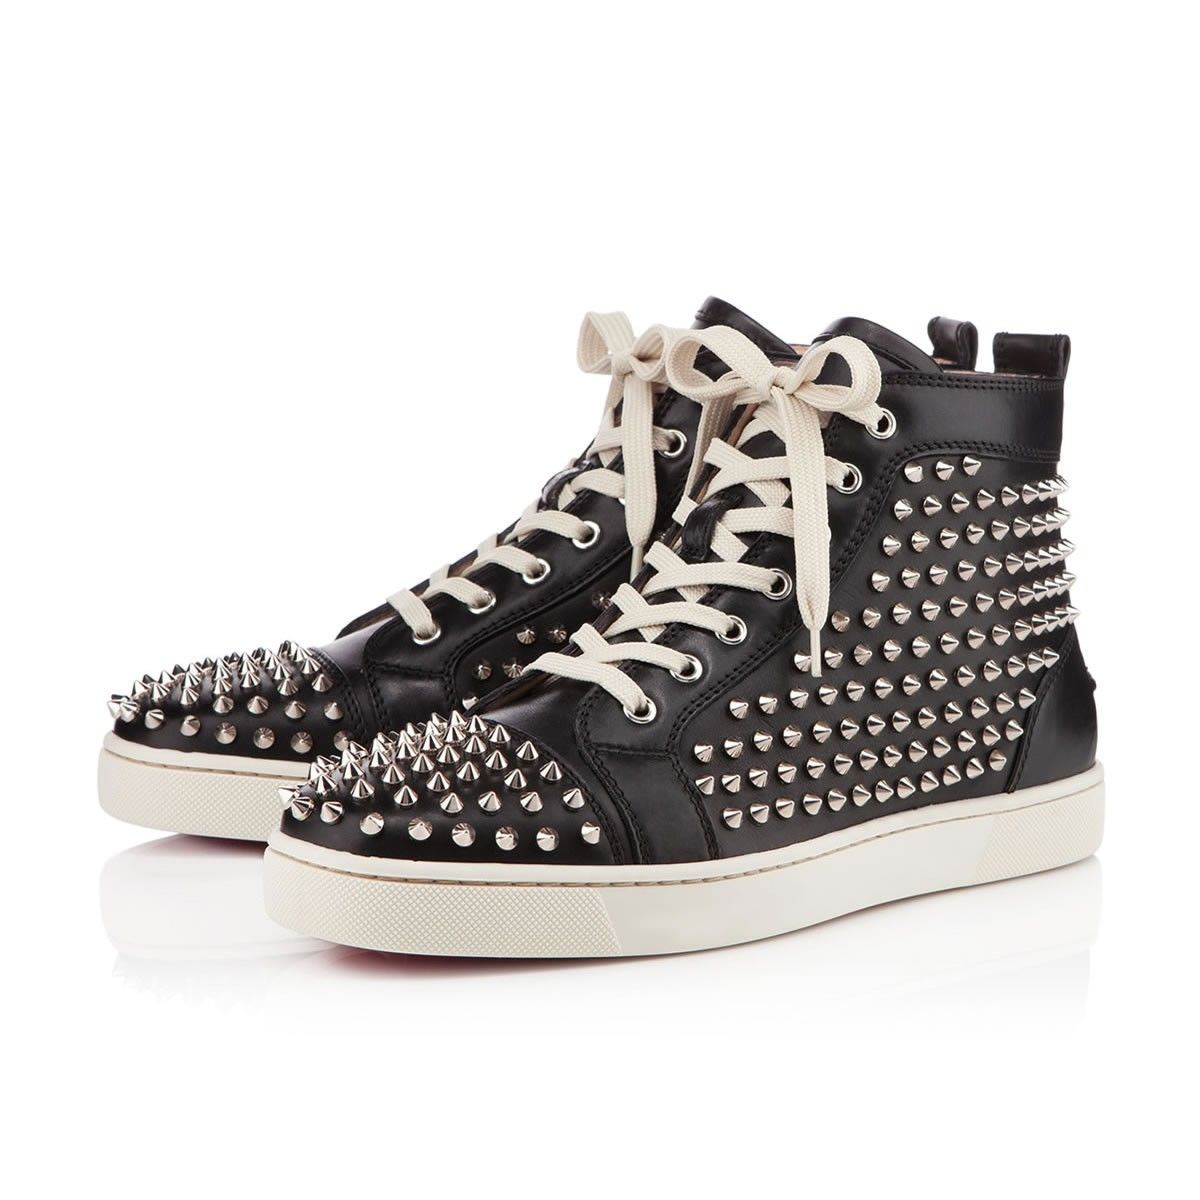 Calf / Spikes in Black Leather